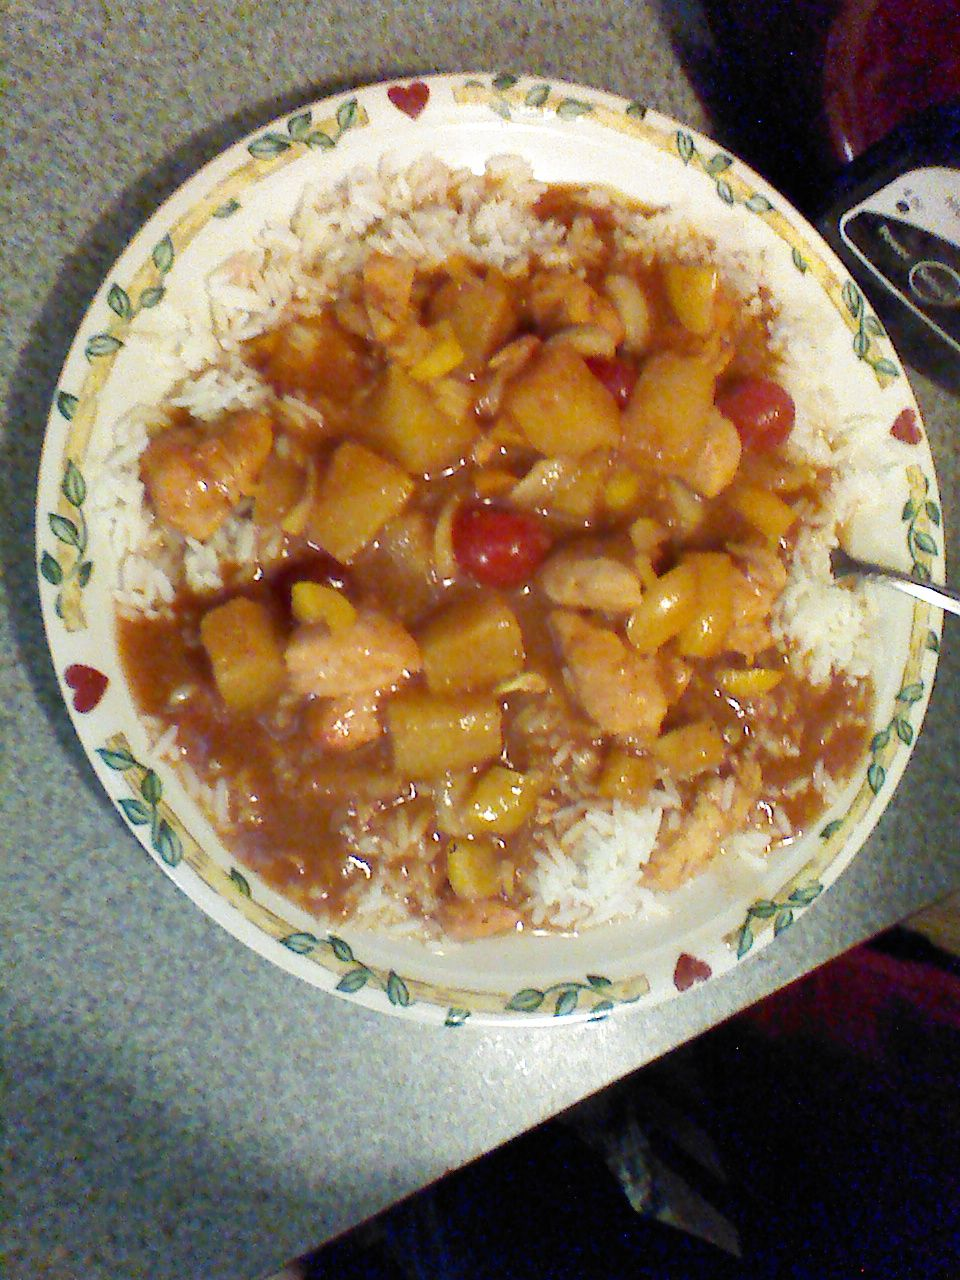 chicken, pineapple, cherries, onions, orange and yellow peppers in honey mango BBQ sauce over white rice, my man is an awesome chef!!!